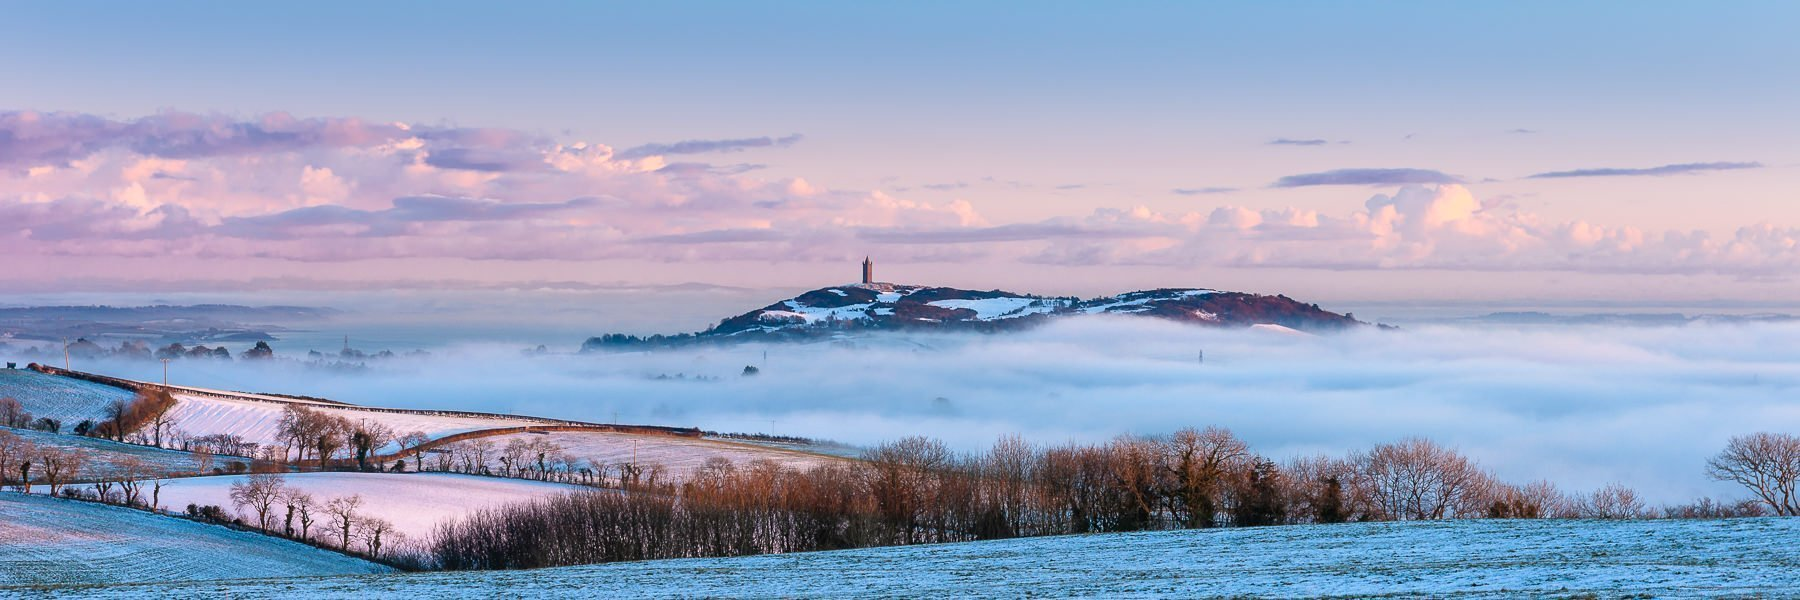 Scrabo Tower tasing above the mist at sunset on a winters day